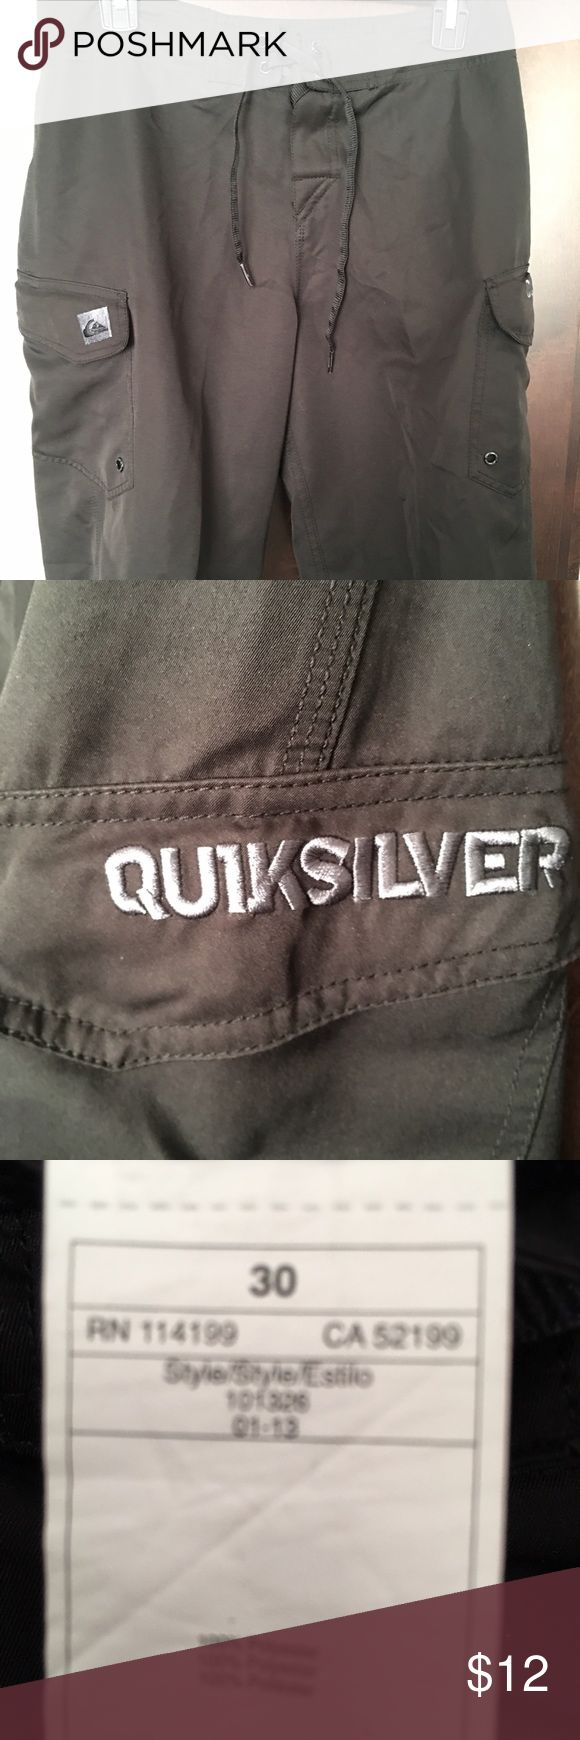 Quiksilver Boardshorts Black Men's Size 30 Like new. Velcro & tie closure. 100% polyester. 2 pockets with Velcro closure. Quiksilver Swim Board Shorts